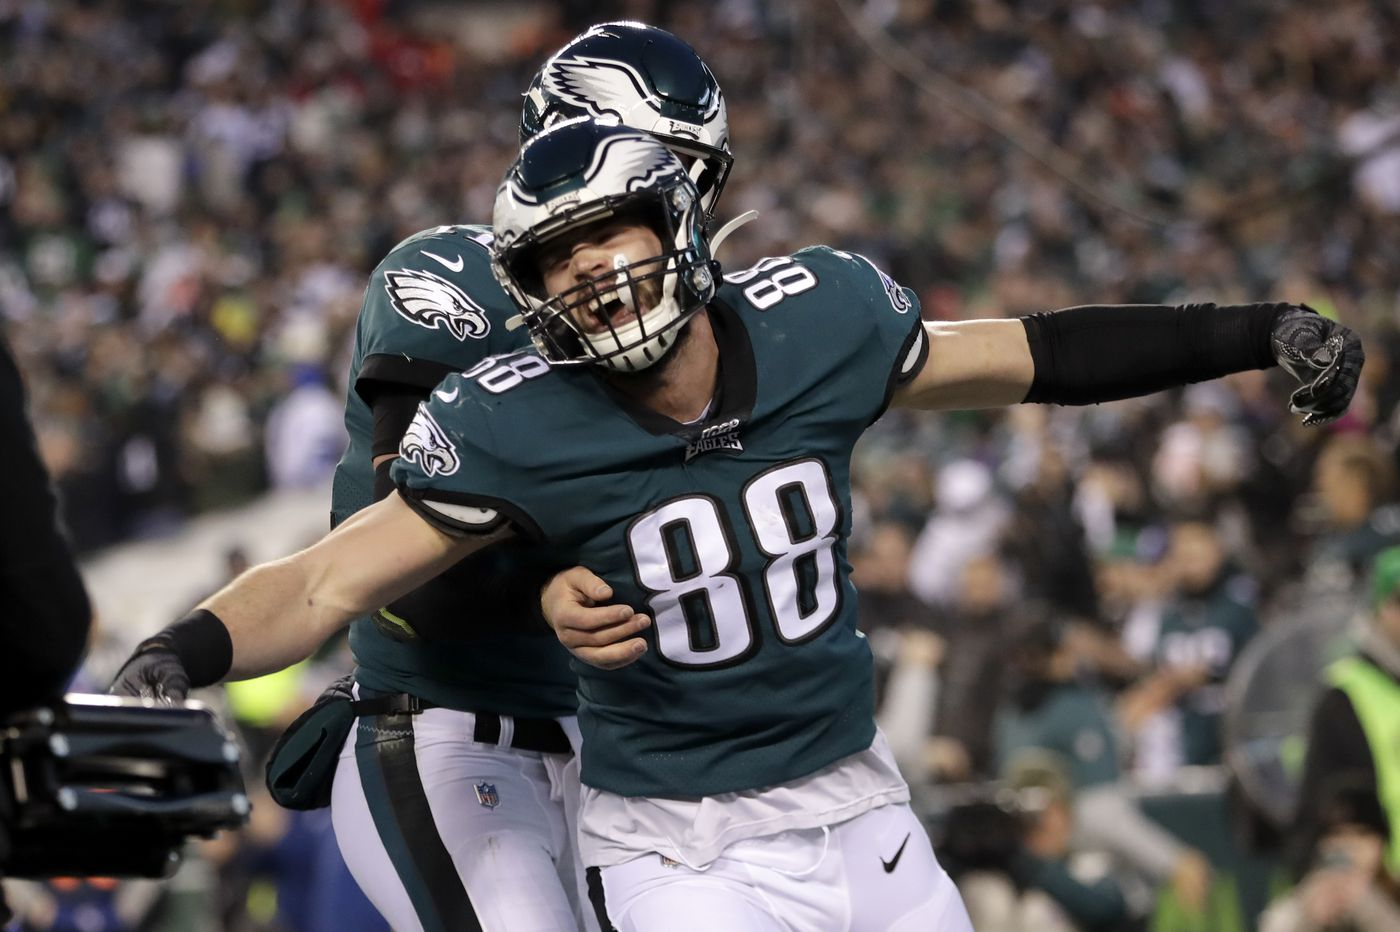 Five reasons the Eagles beat the Cowboys and are one win away from making the playoffs